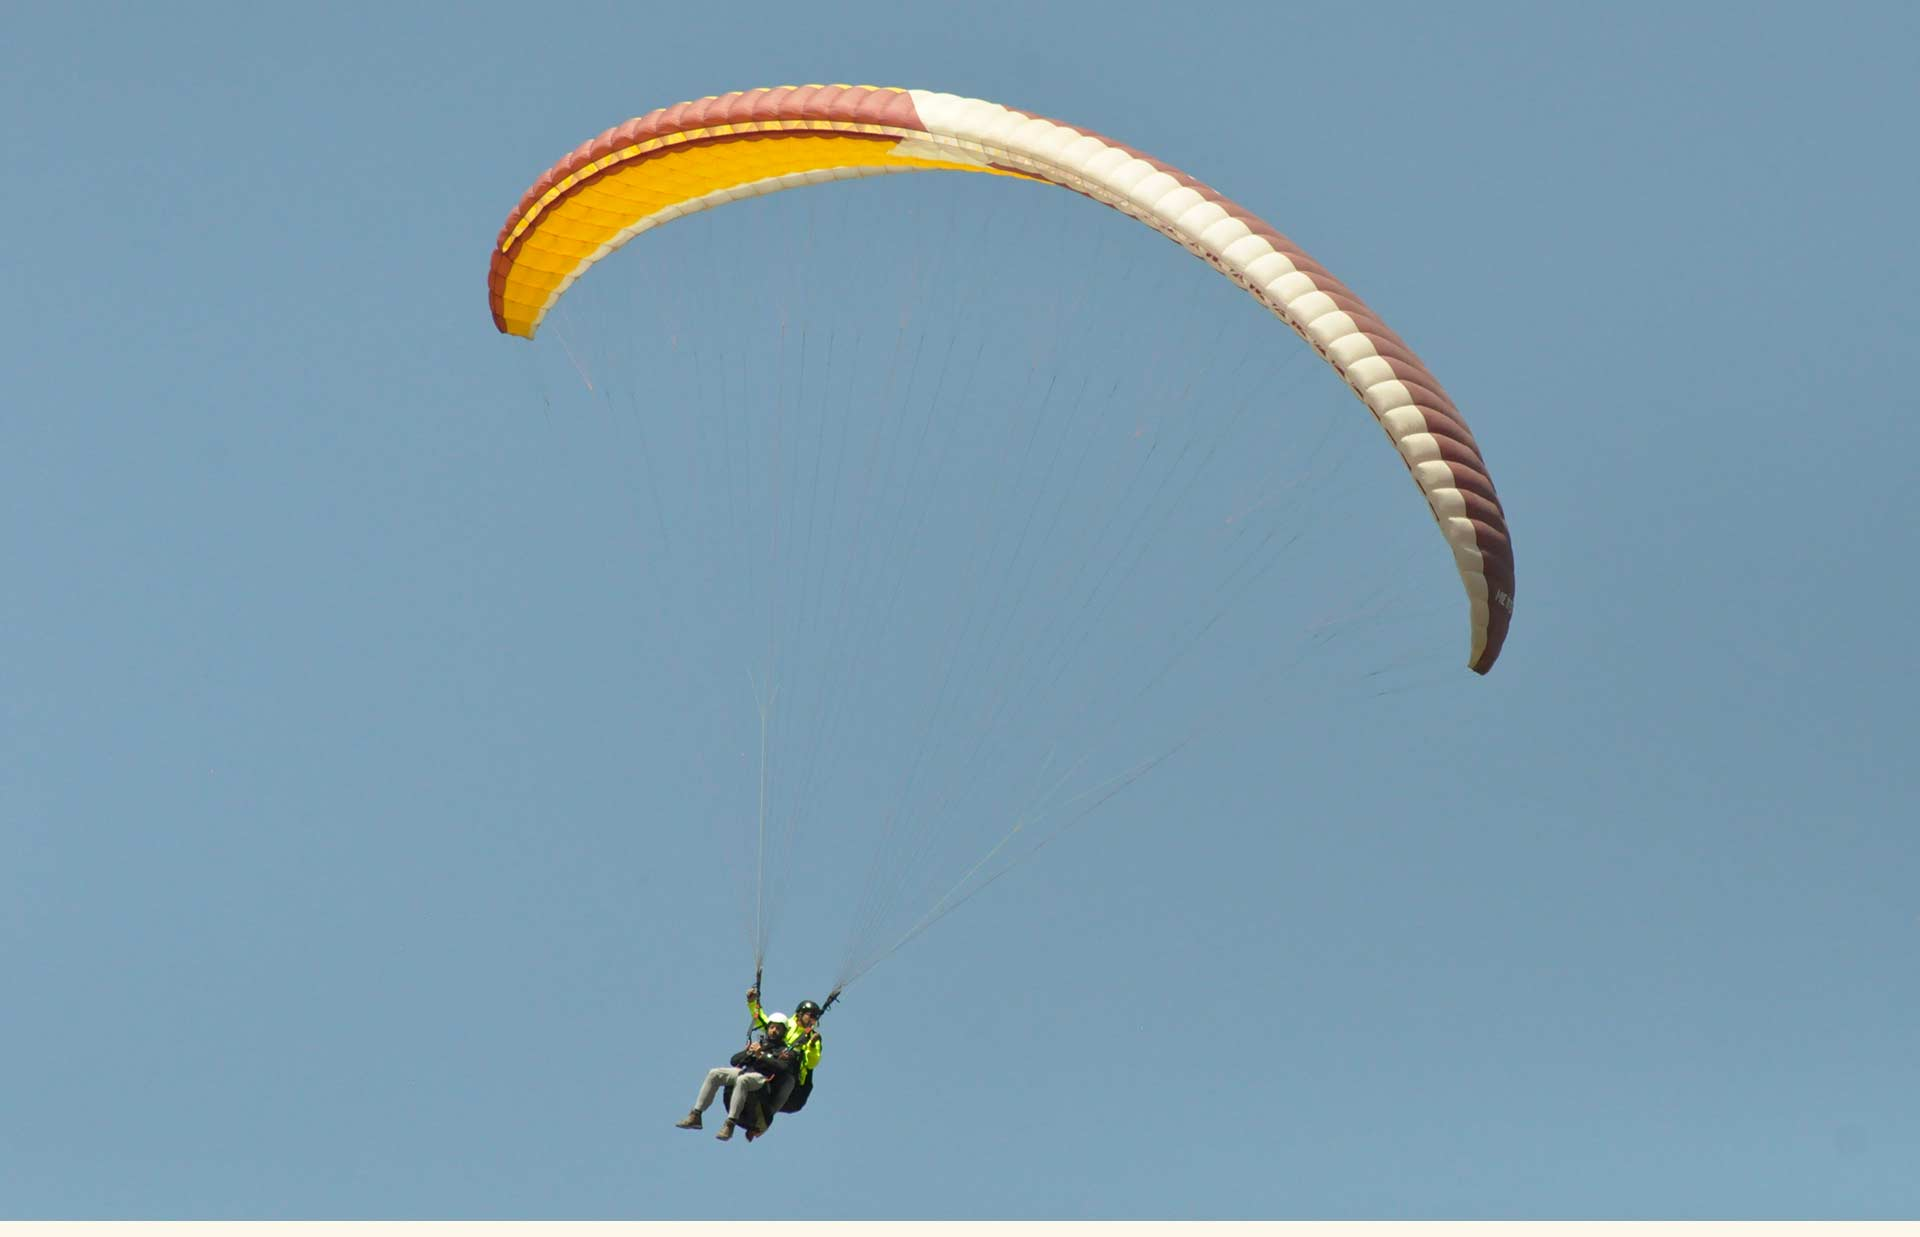 http://m.thegreatnext.com/Paragliding Tandem Himachal Pradesh Bir Billing Adventure Sports Fun Flying The Great Next